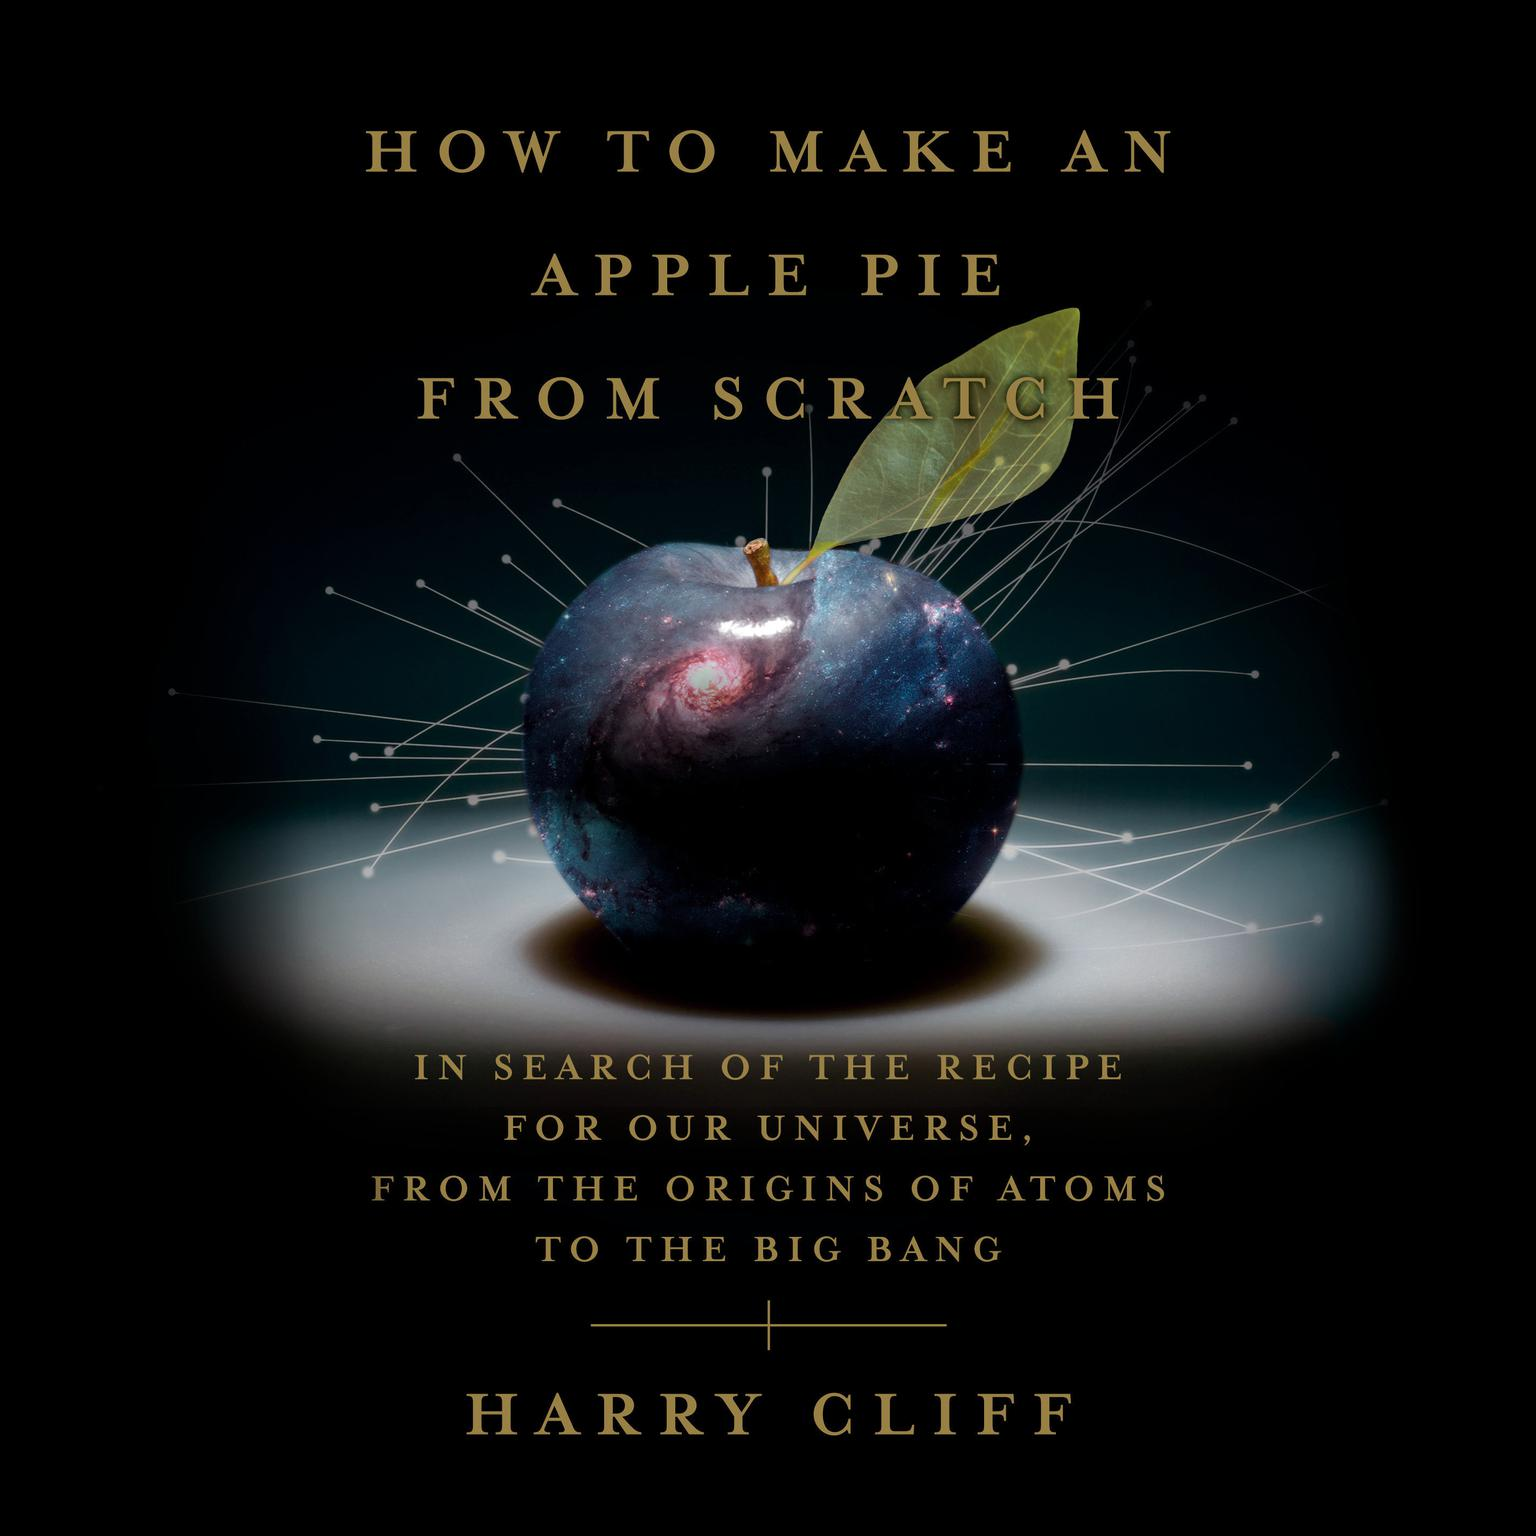 How to Make an Apple Pie from Scratch: In Search of the Recipe for Our Universe, from the Origins of Atoms to the Big Bang Audiobook, by Harry Cliff